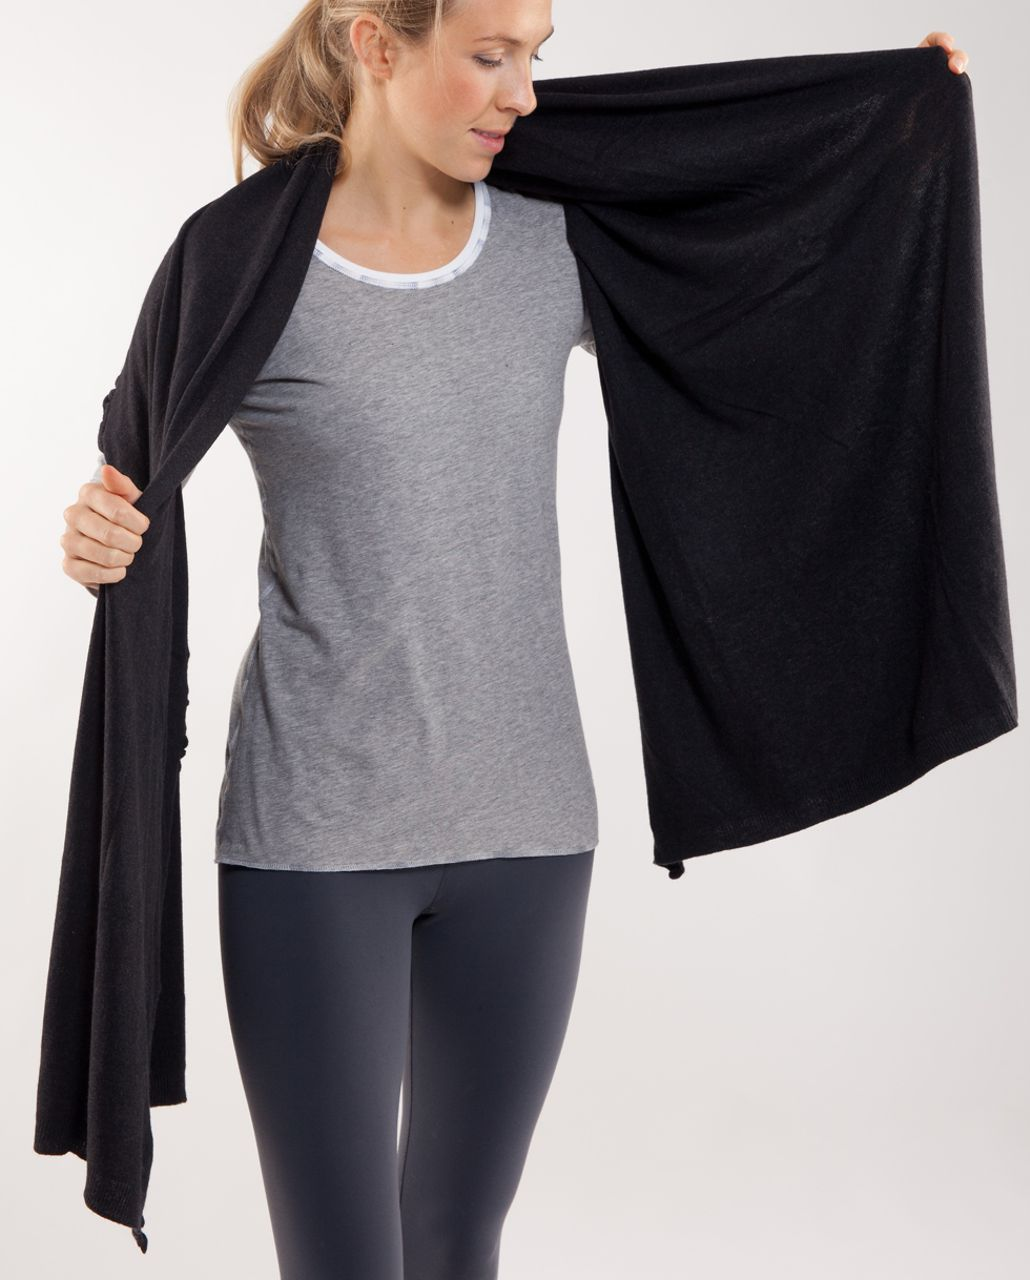 Lululemon Allegro Scarf - Heathered Black